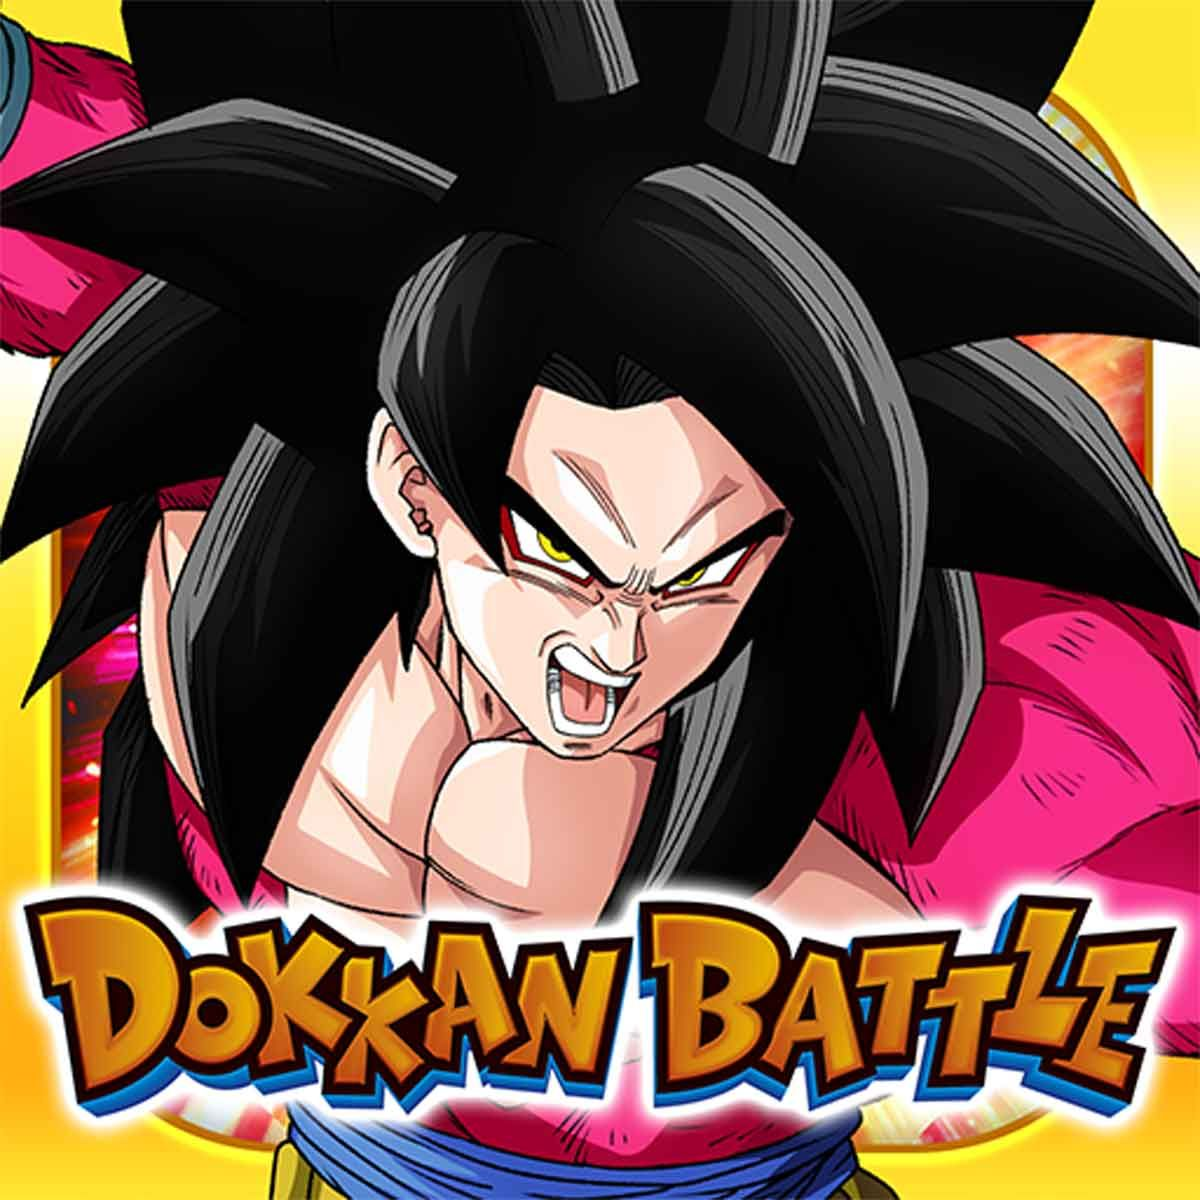 JP] Dragon Ball Z Dokkan Battle Mod 4 5 1 Apk (ドラゴンボールZ